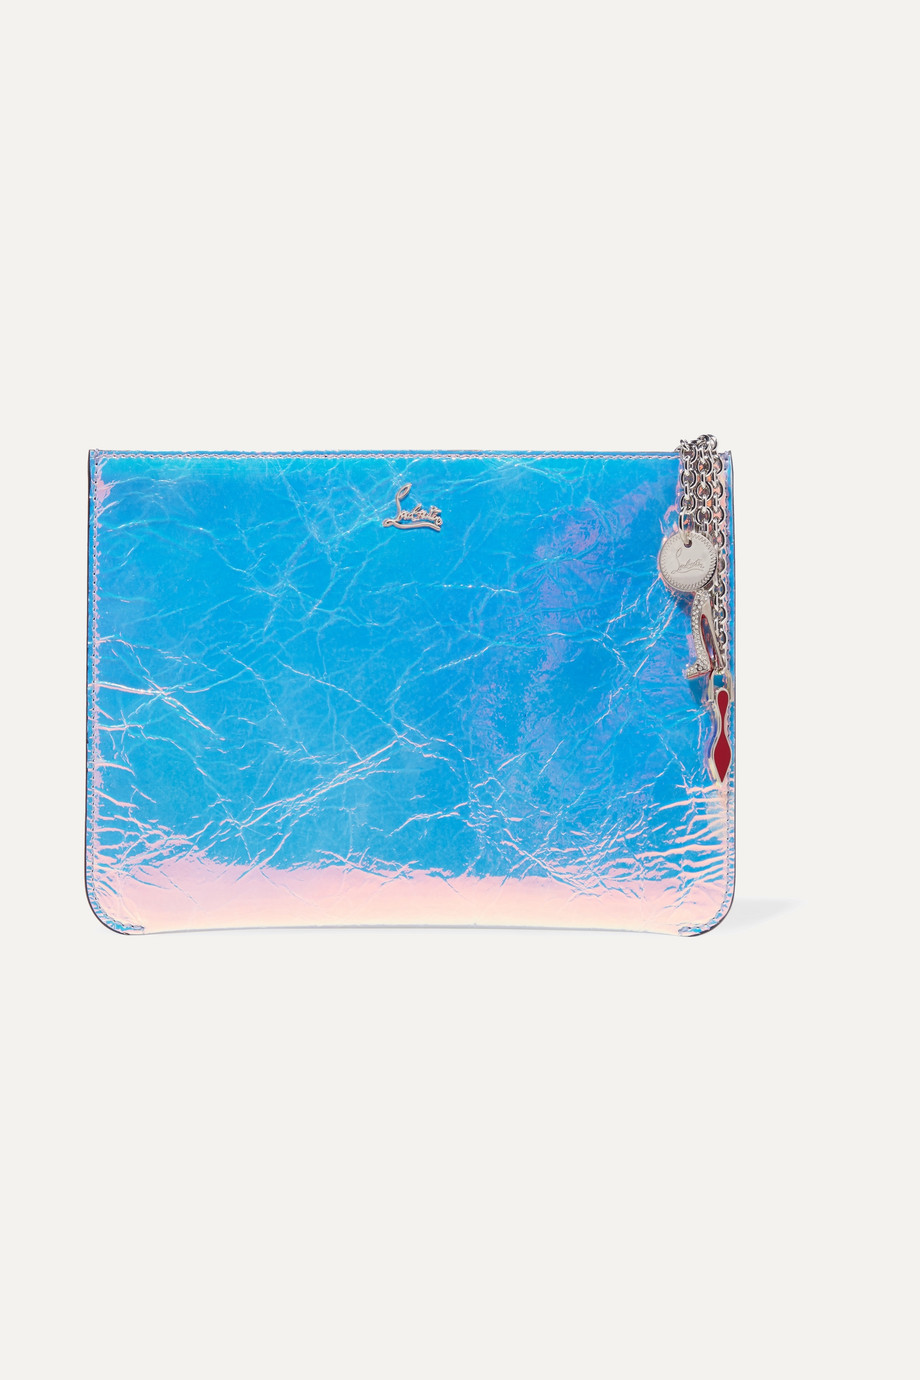 Christian Louboutin Loubicute iridescent textured-leather clutch